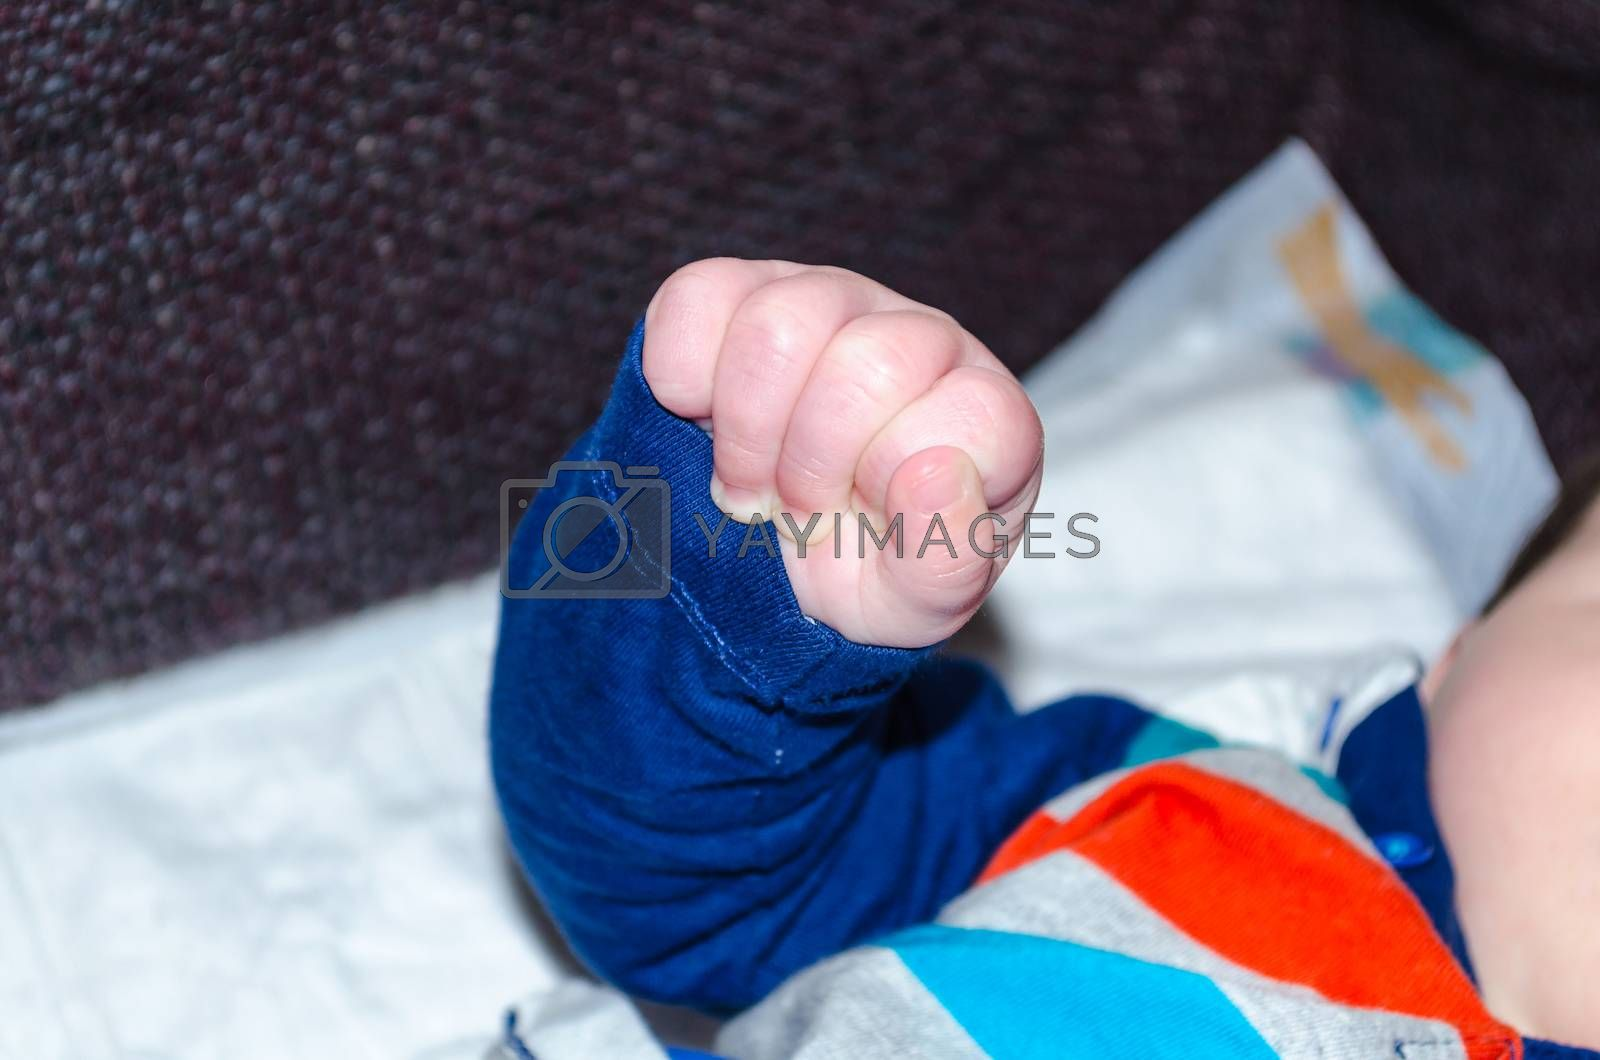 Close-up, clenched fist baby.